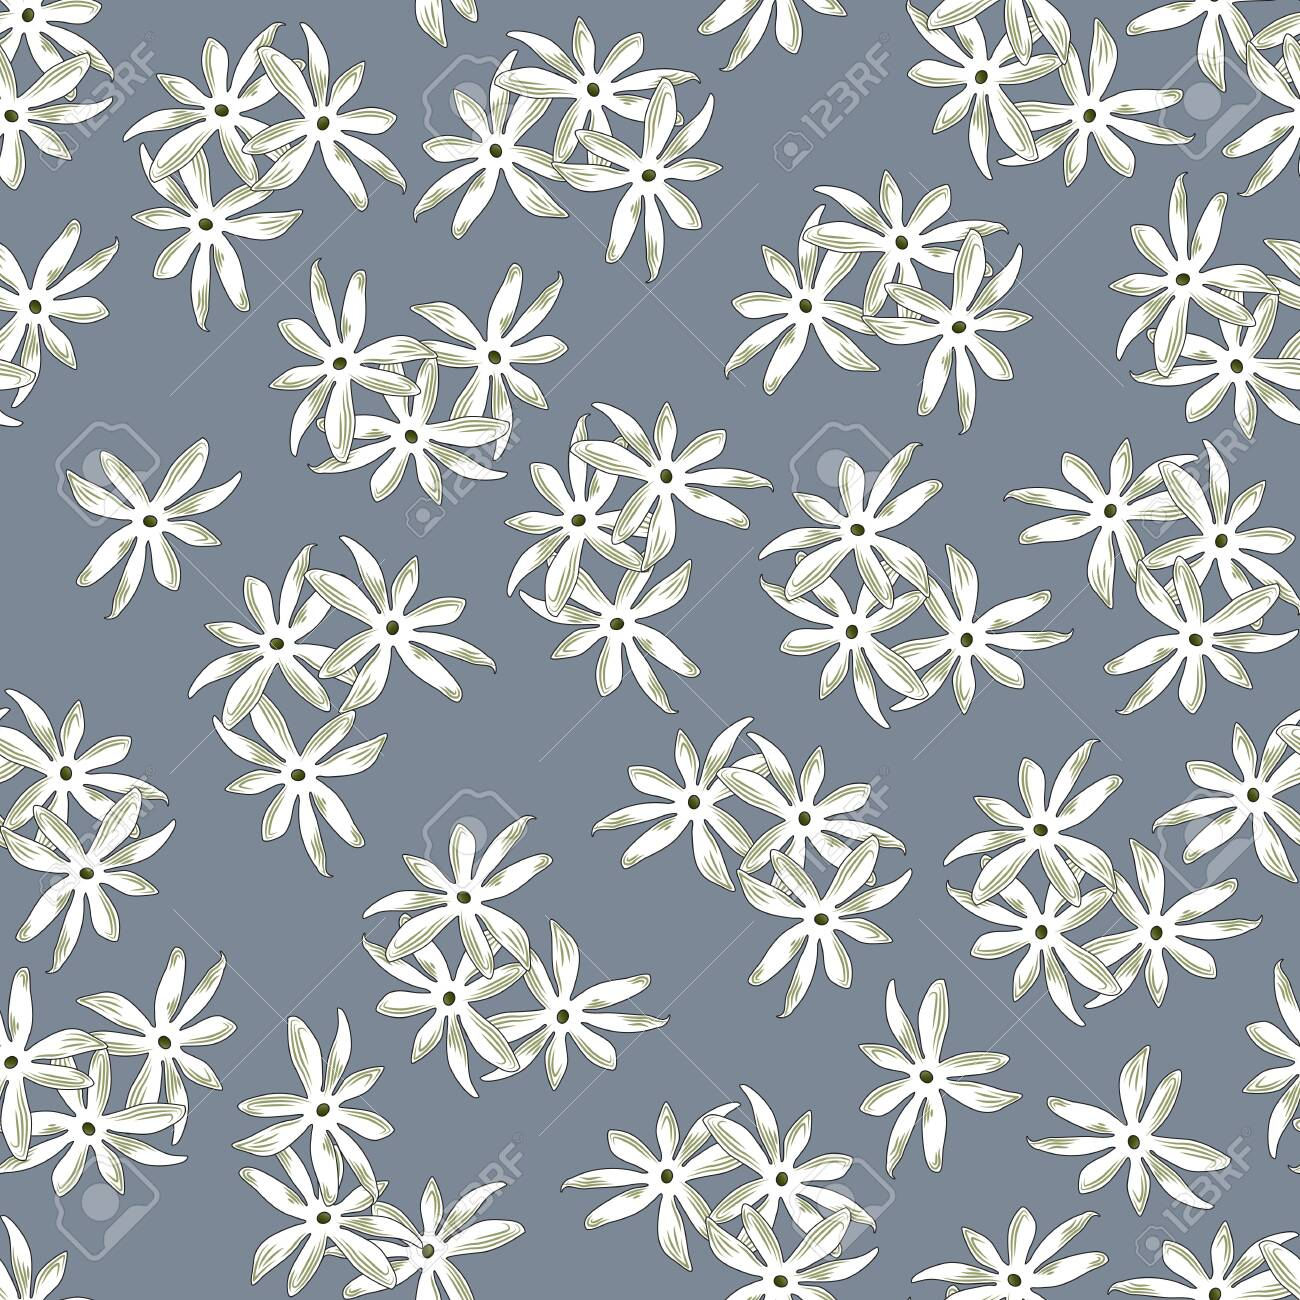 Seamless floral print, randomly arranged groups of white with olive flowers, gray background. Great for decorating fabrics, textiles, gift wrapping, printed matter, interiors, advertising. - 150402460